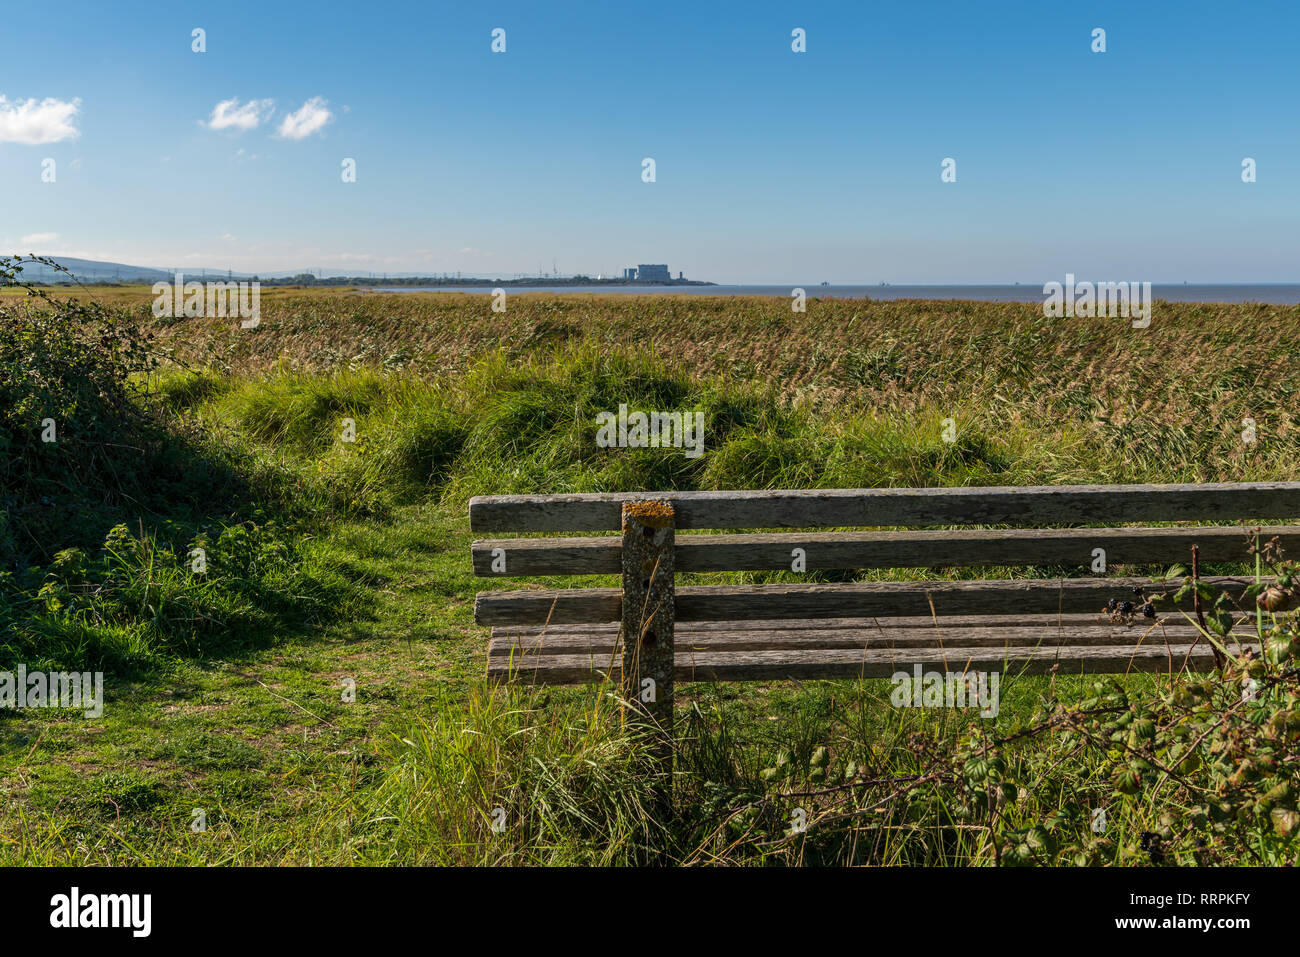 Bridgwater Bay Nature Reserve, England, UK - October 04, 2018: A bench with a view over the Bristol Channel and Hinkley Point Nuclear Power Station in - Stock Image